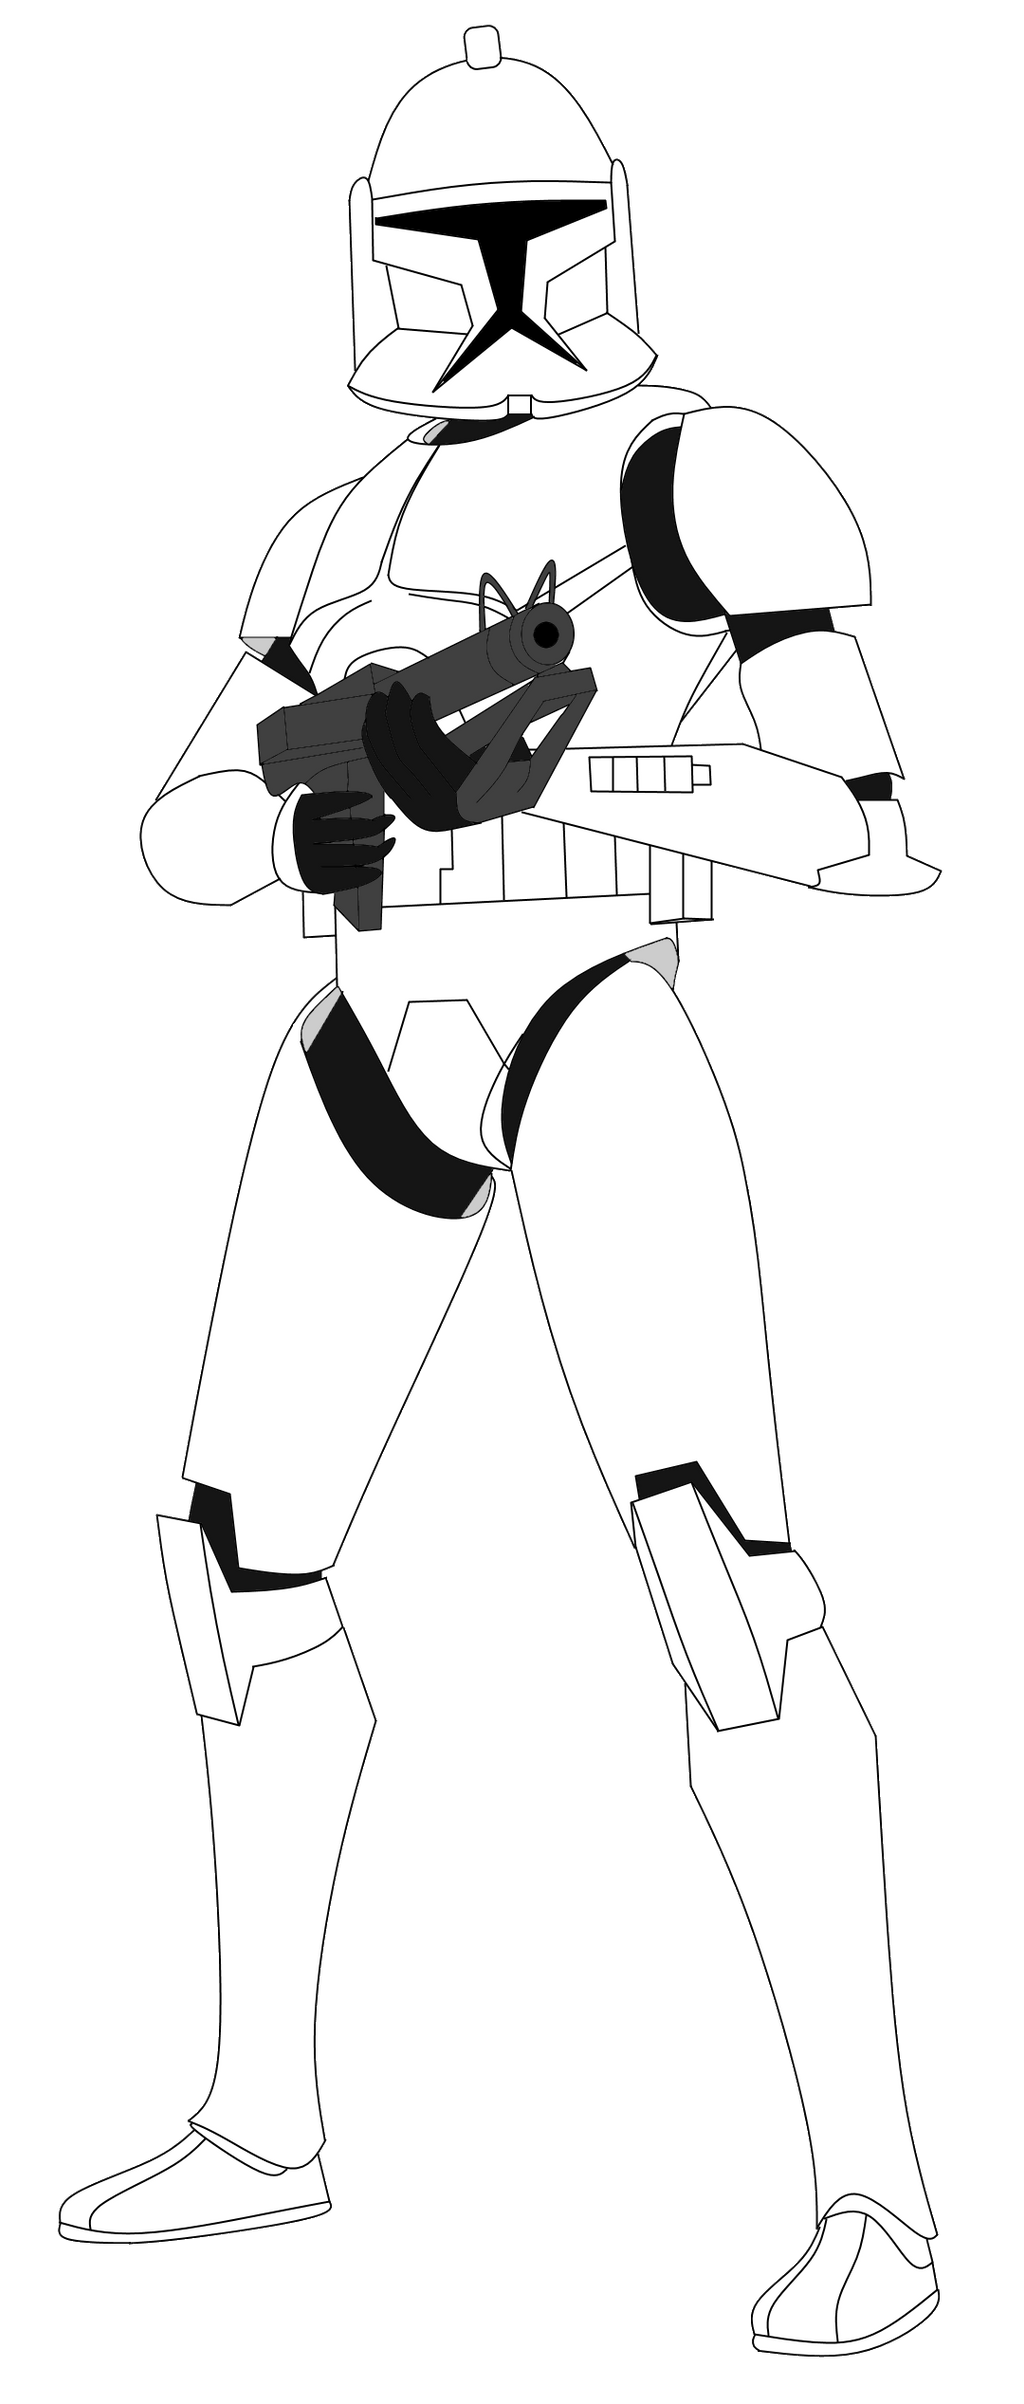 clone trooper colouring pages clone trooper coloring page by antonvandort on deviantart clone colouring pages trooper